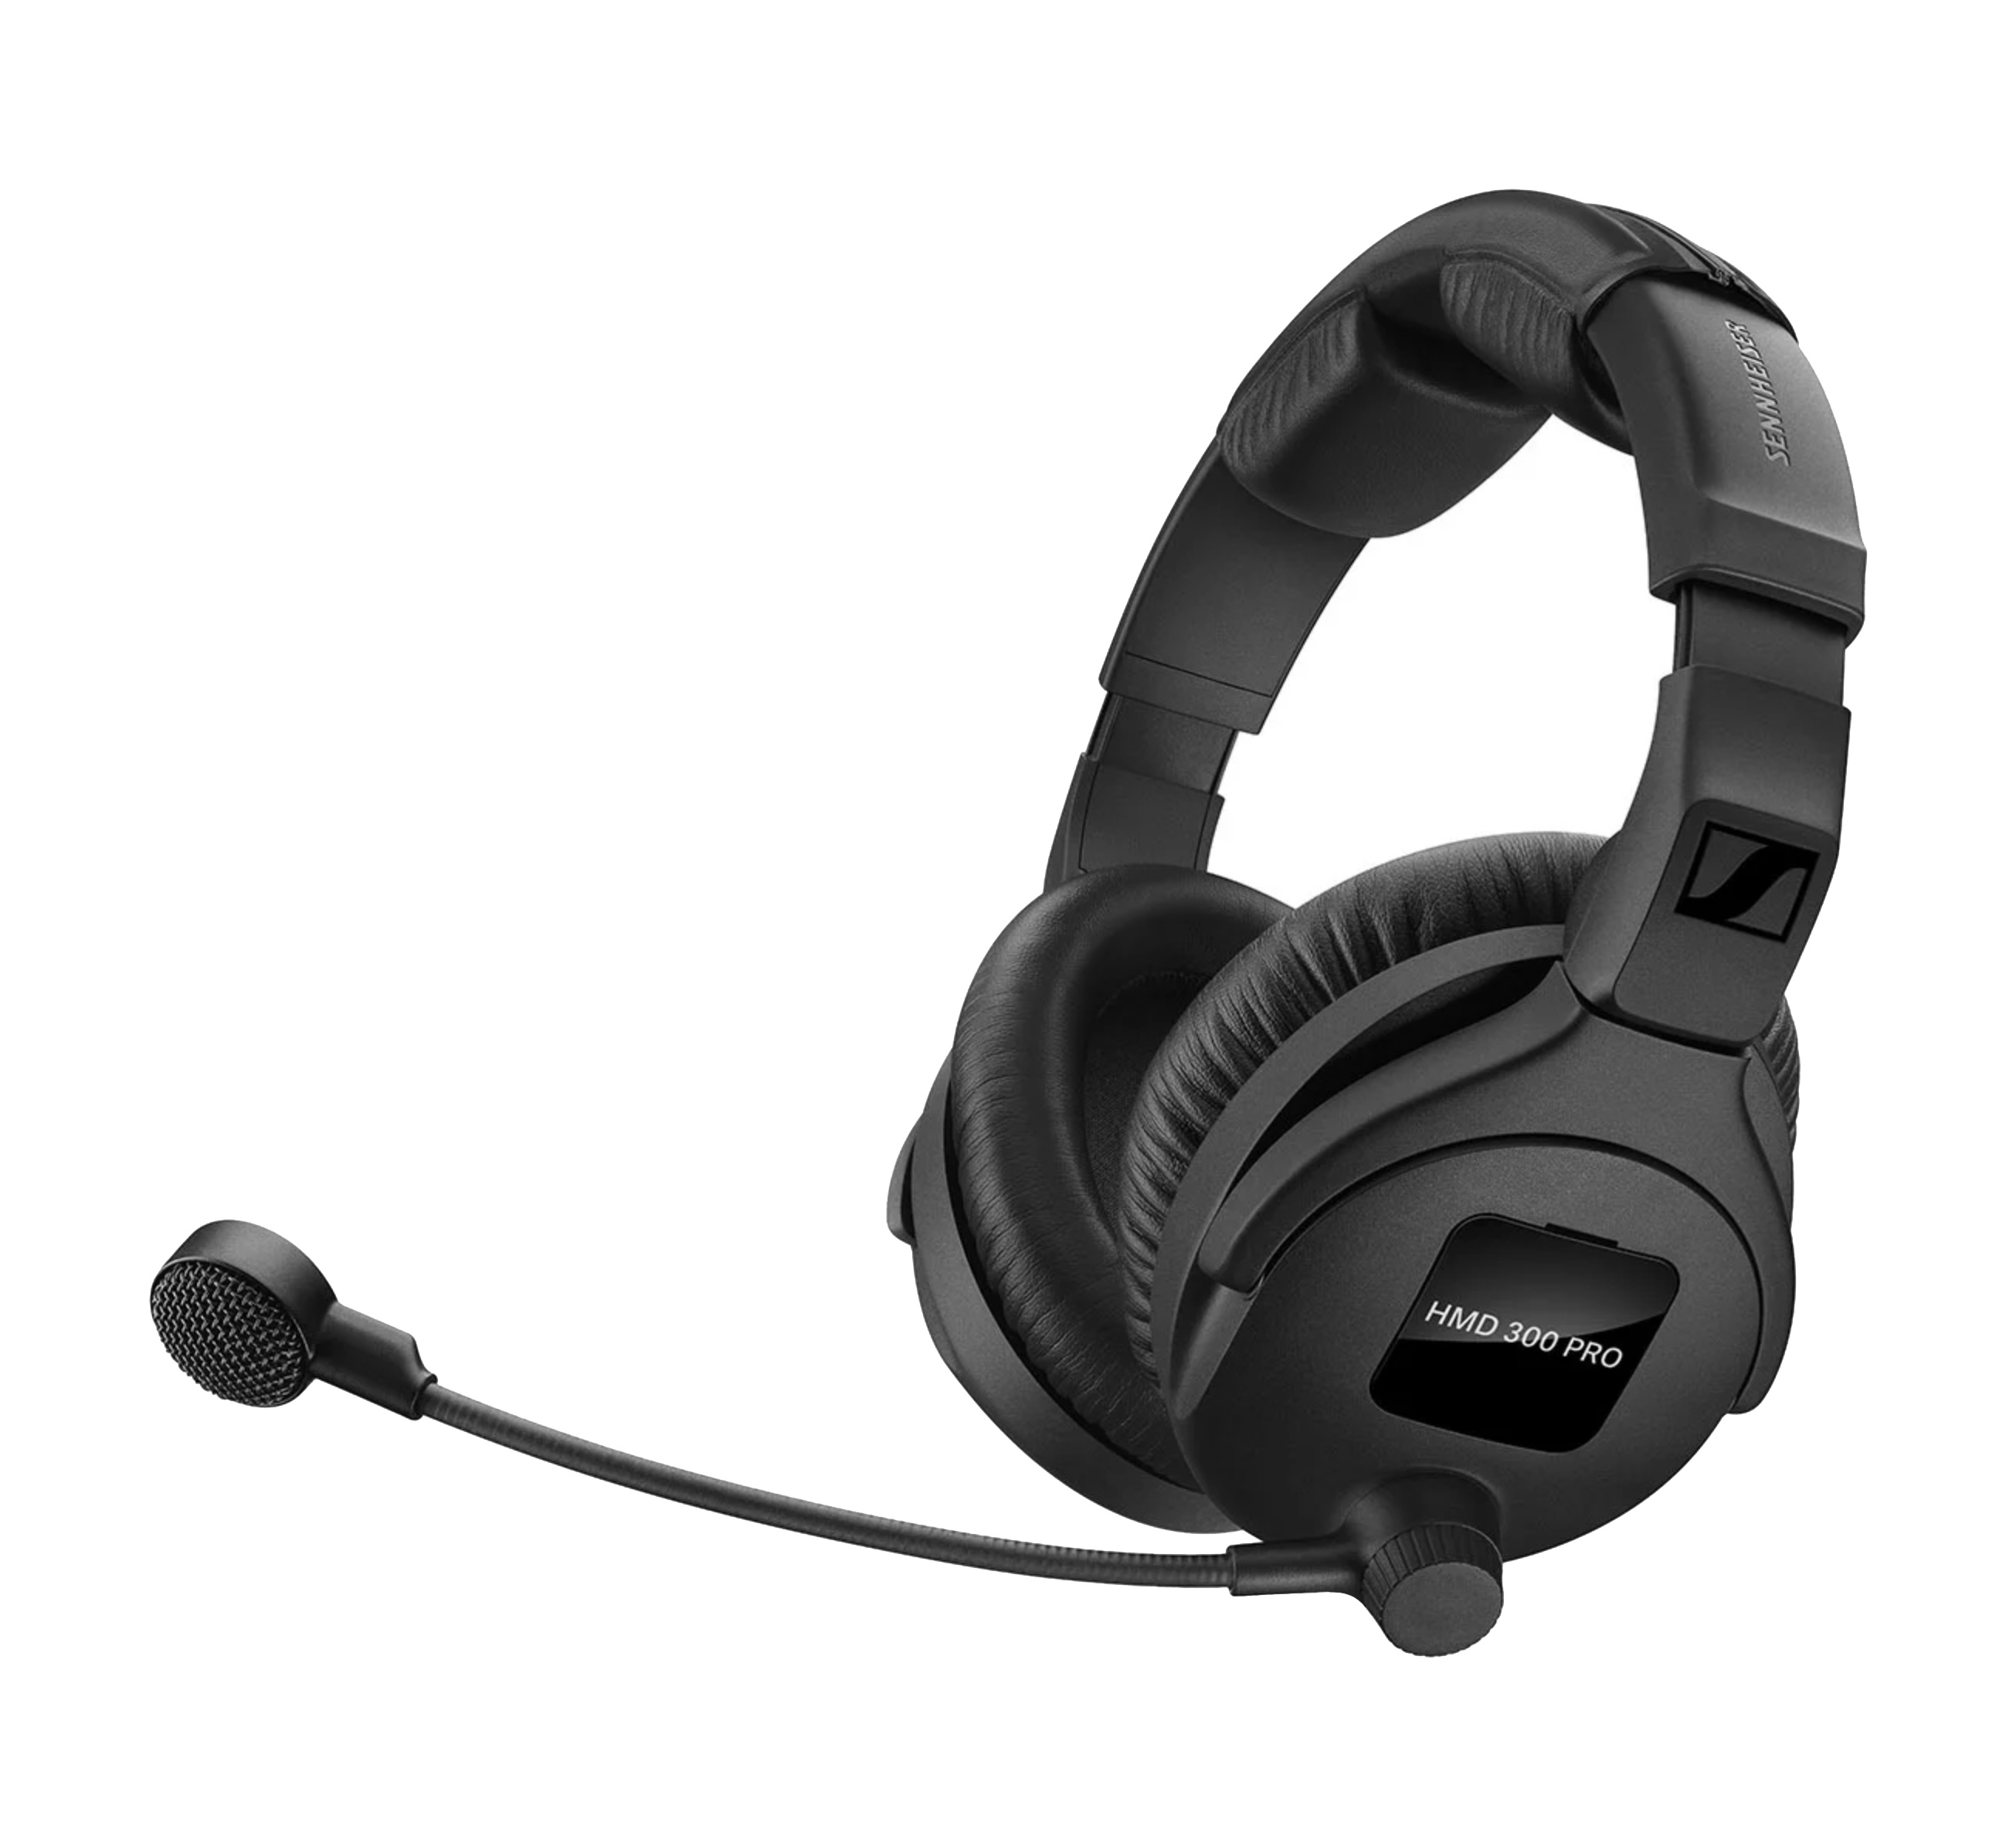 Sennheiser HMD 300 Pro Broadcast Headset (Without Cable)